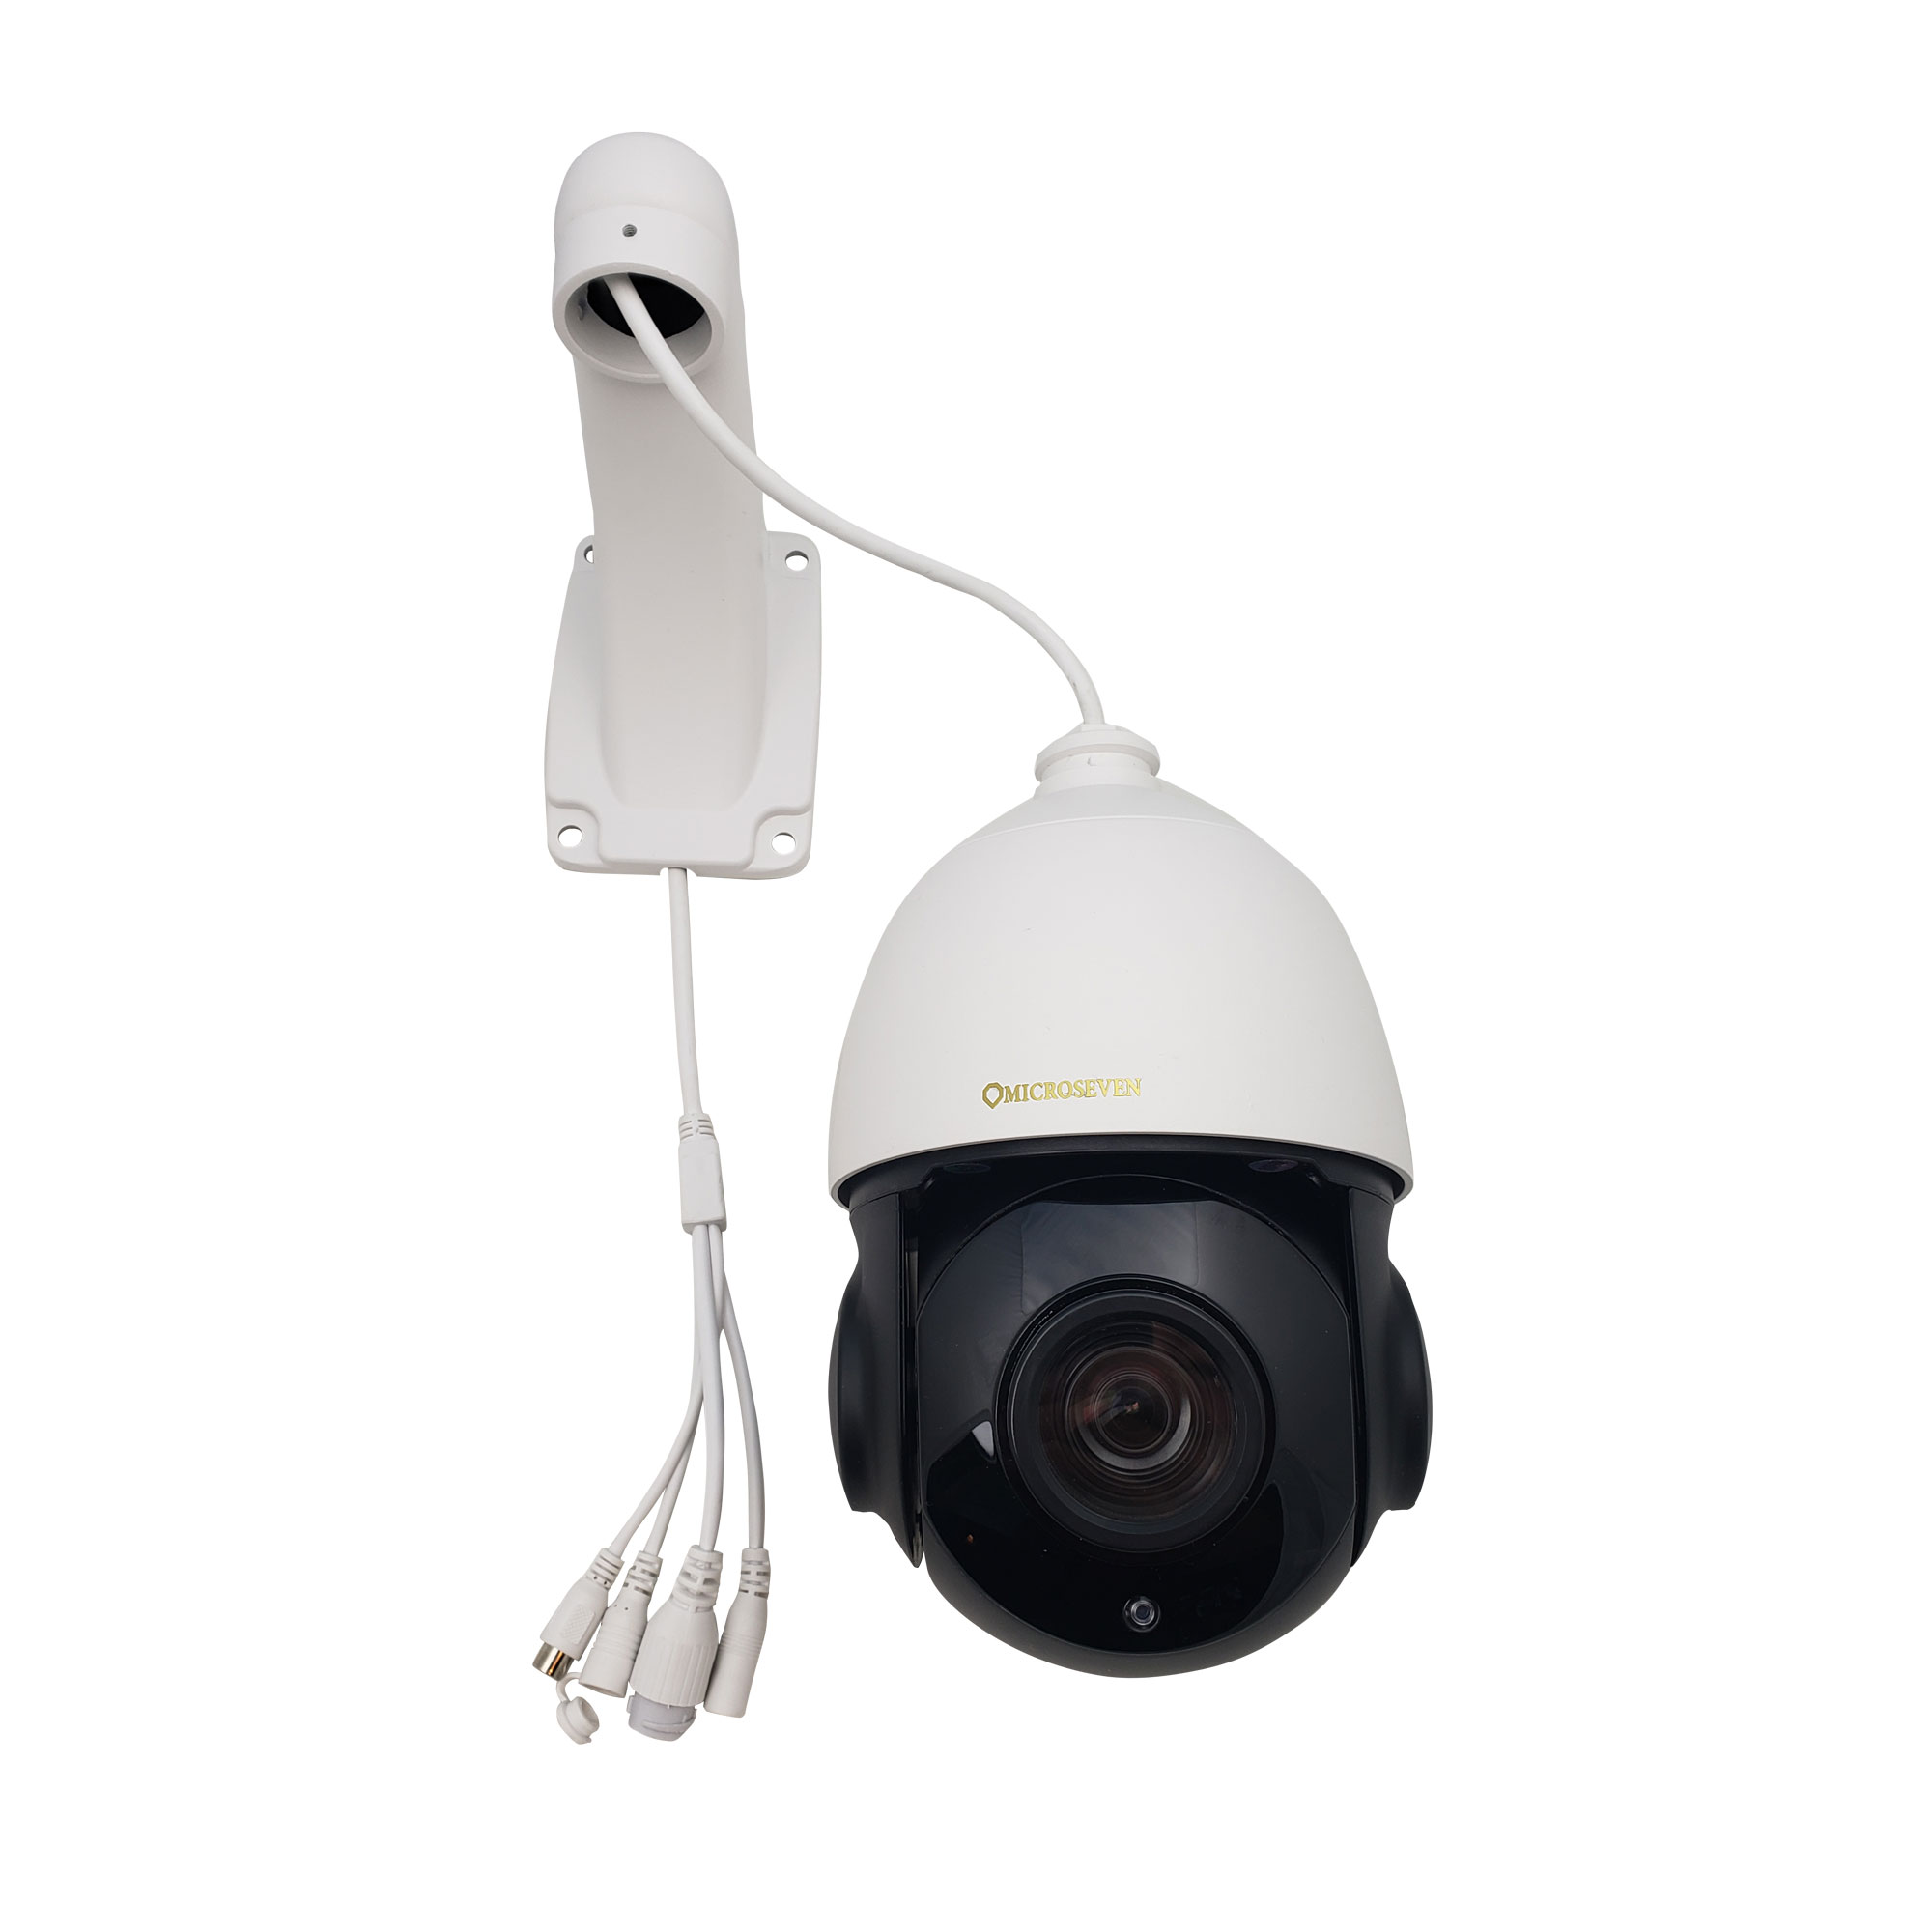 Microseven 1080P / 30fps HD 20X Optical Zoom Pan Tilt Speed Dome IP Camera Built-in WiFi &POE+ Outdoor PTZ Camera, Works with Alexa, Night Vision,Sony Starvis CMOS,IP66 Weatherproof, Built-in 128GB SDcard Slot, Two-Way Audio with Build-in Microphone & External Speaker (Included), Auto Cruise,ONVIF, Web GUI & App, Free 24Hr Cloud Storage